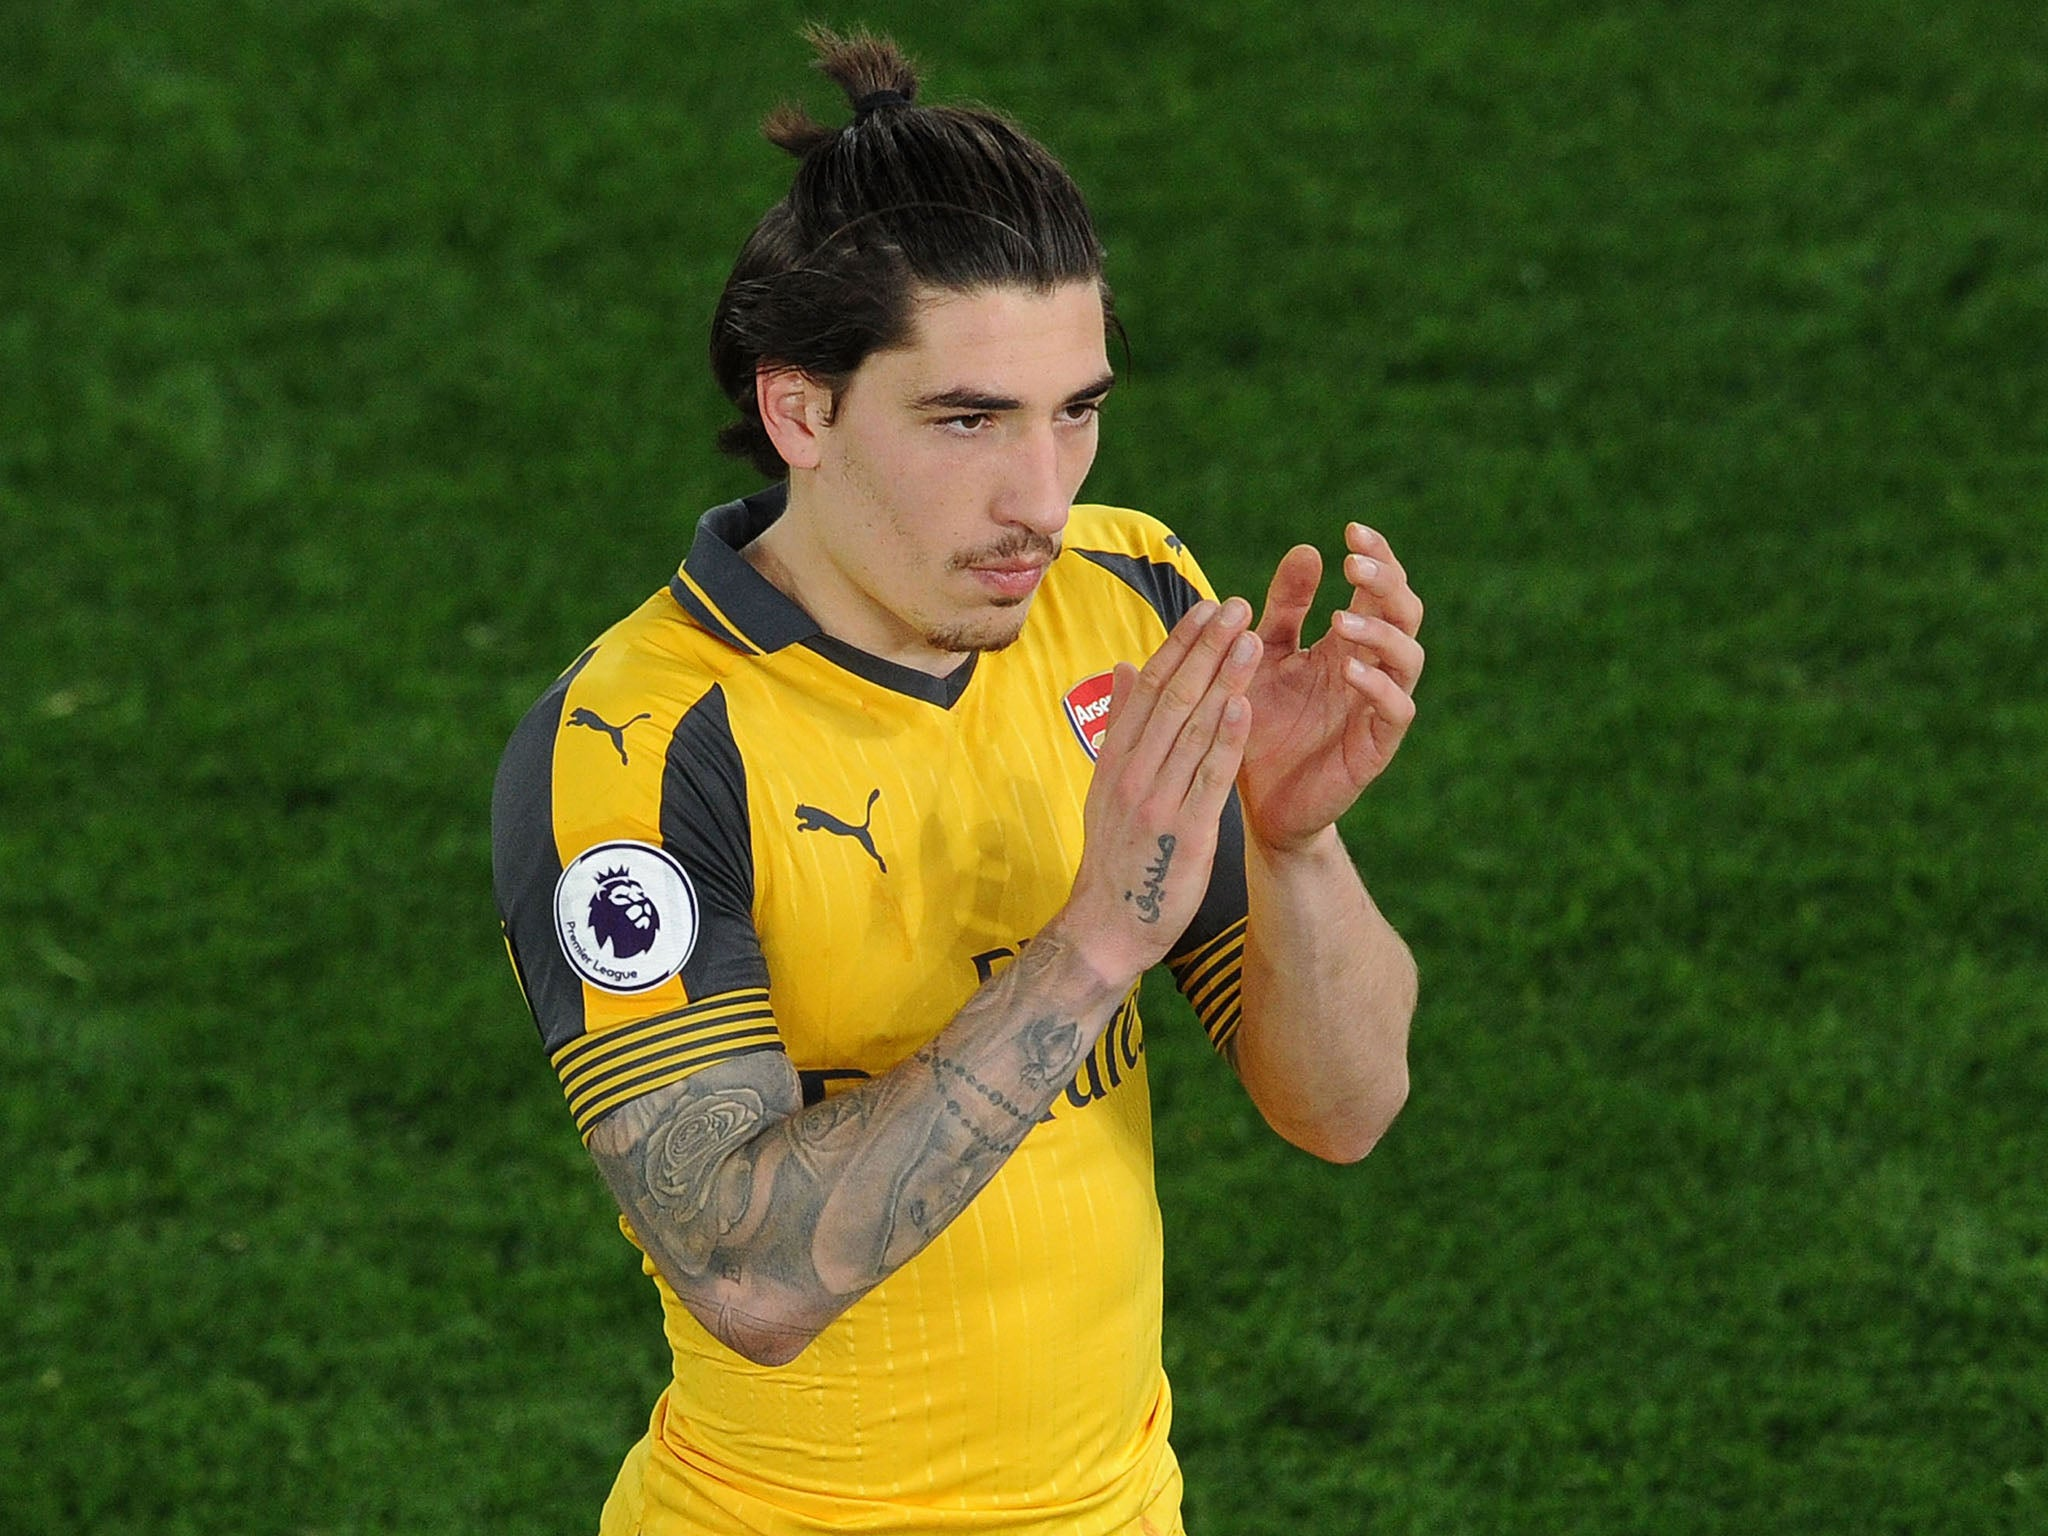 Grenfell Tower fire: Arsenal star Hector Bellerin pledges £50 for every minute he plays of U21 European Championships